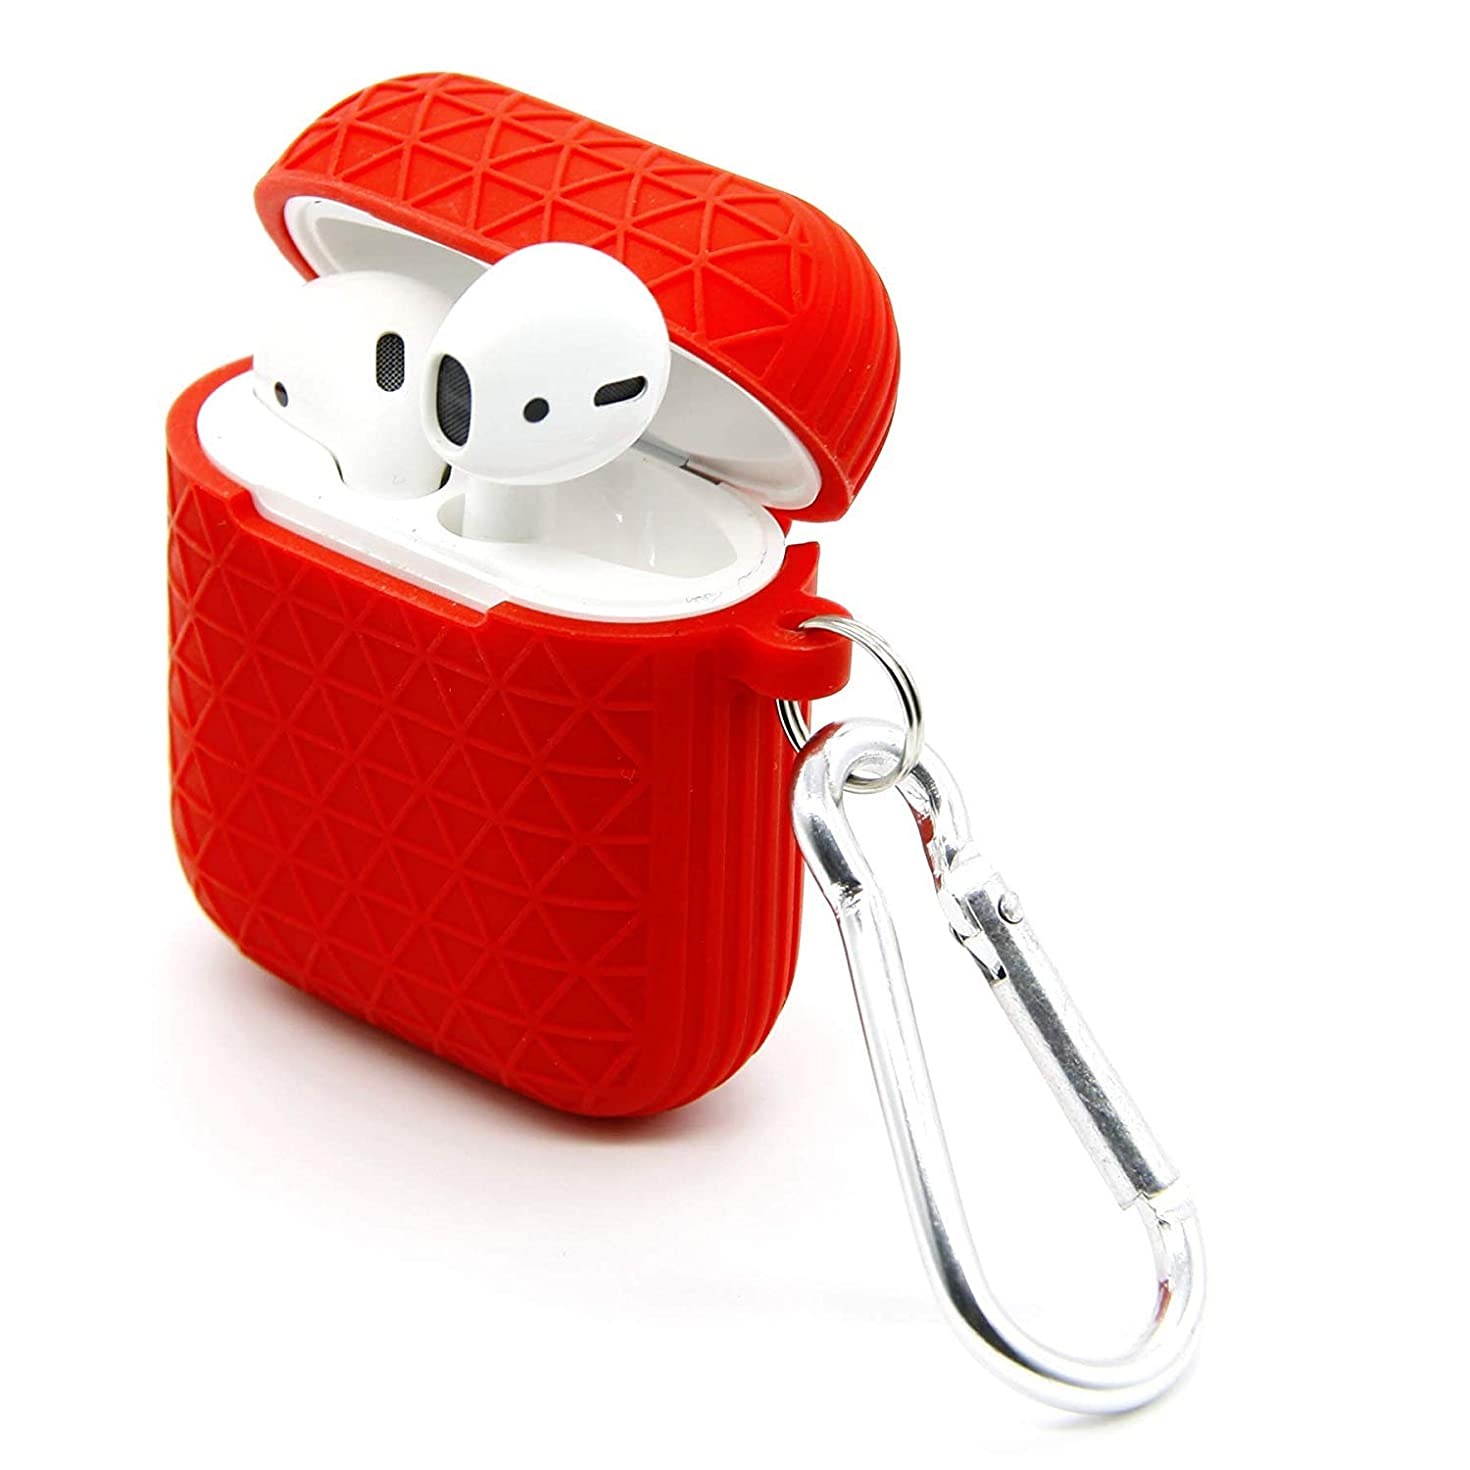 Silicone Case for Airpods 1 & 2 with Keychain [Not for Wireless Charging Case], Shockproof Earphone Protective Cover Skin for Apple AirPod Charging Case Red